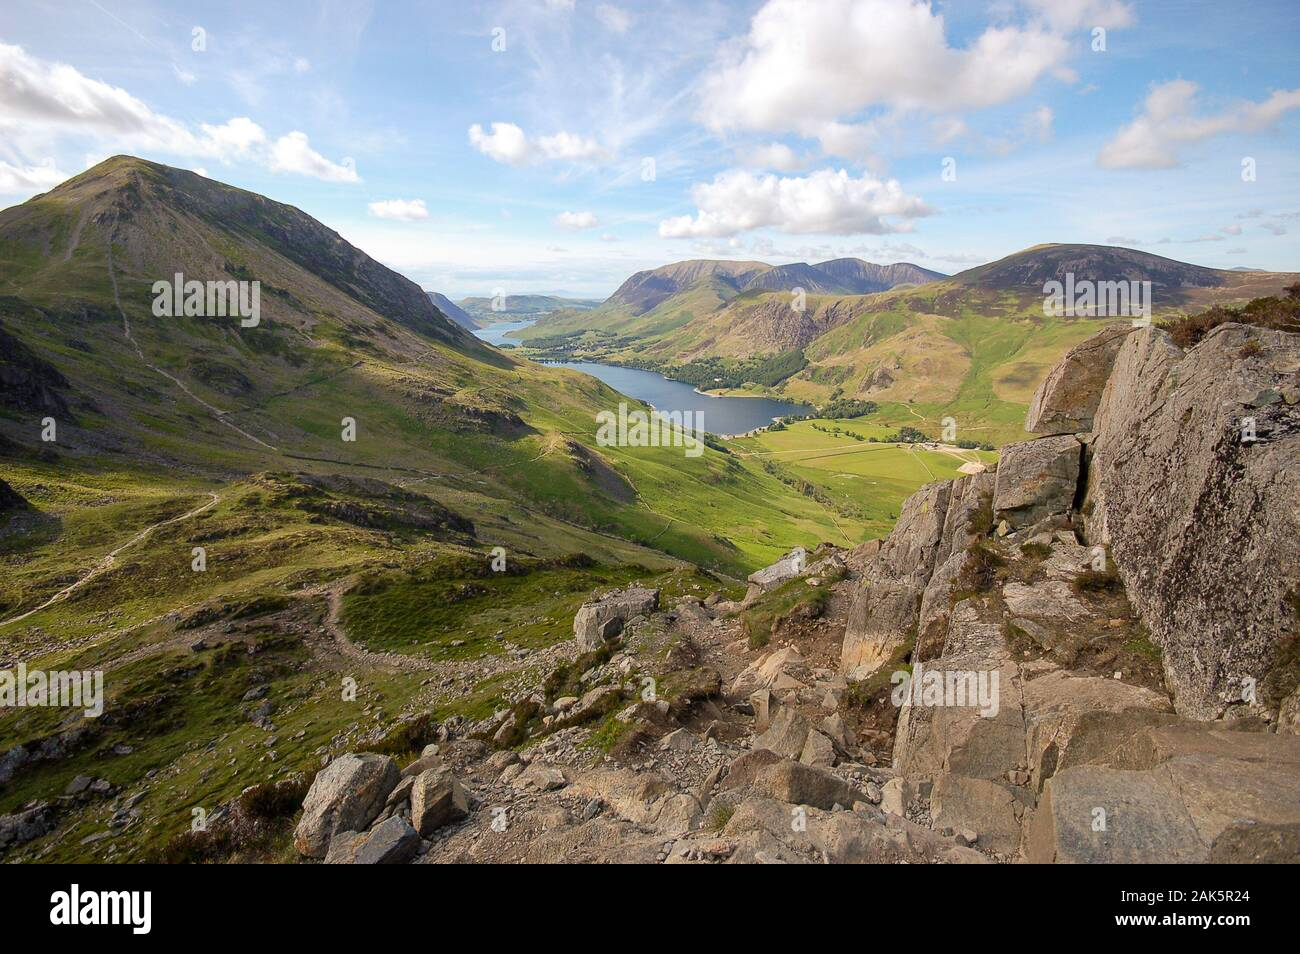 Buttermere village and lake, and Crummock Water, lie in the valley below the mountains of the English Lake District, seen from the peak of Giant Hayst Stock Photo